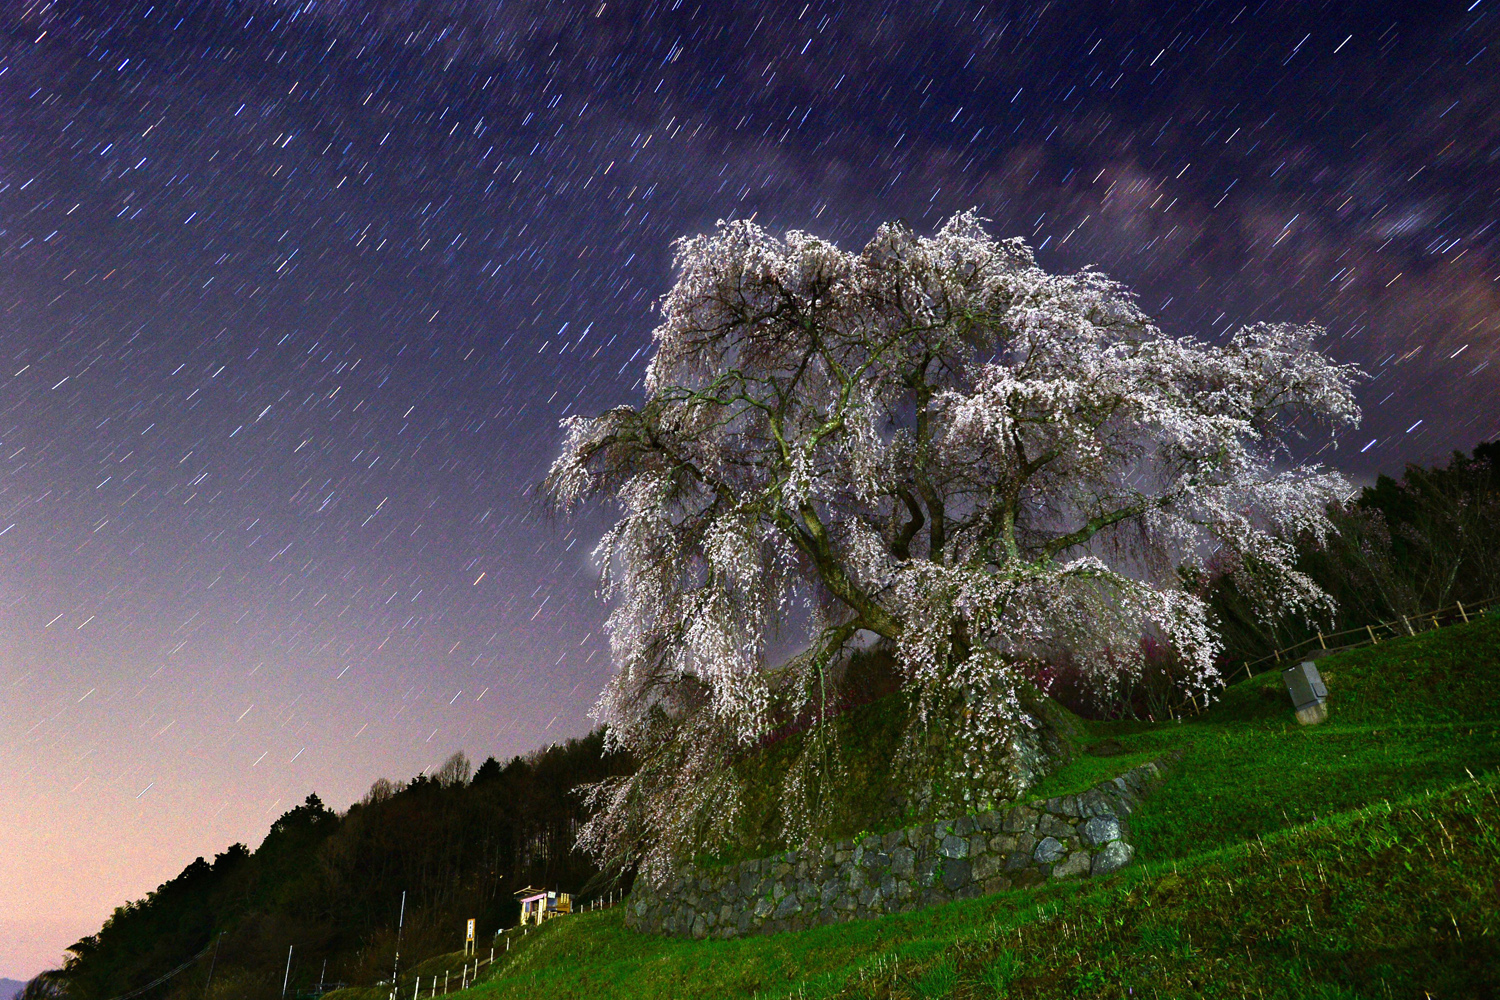 Apr. 8, 2014 In this long exposure image, the 'Matabe-e zakura', cherry blossom which is believed to be more than 300 years old, is in full bloom in Uda, Nara, Japan.